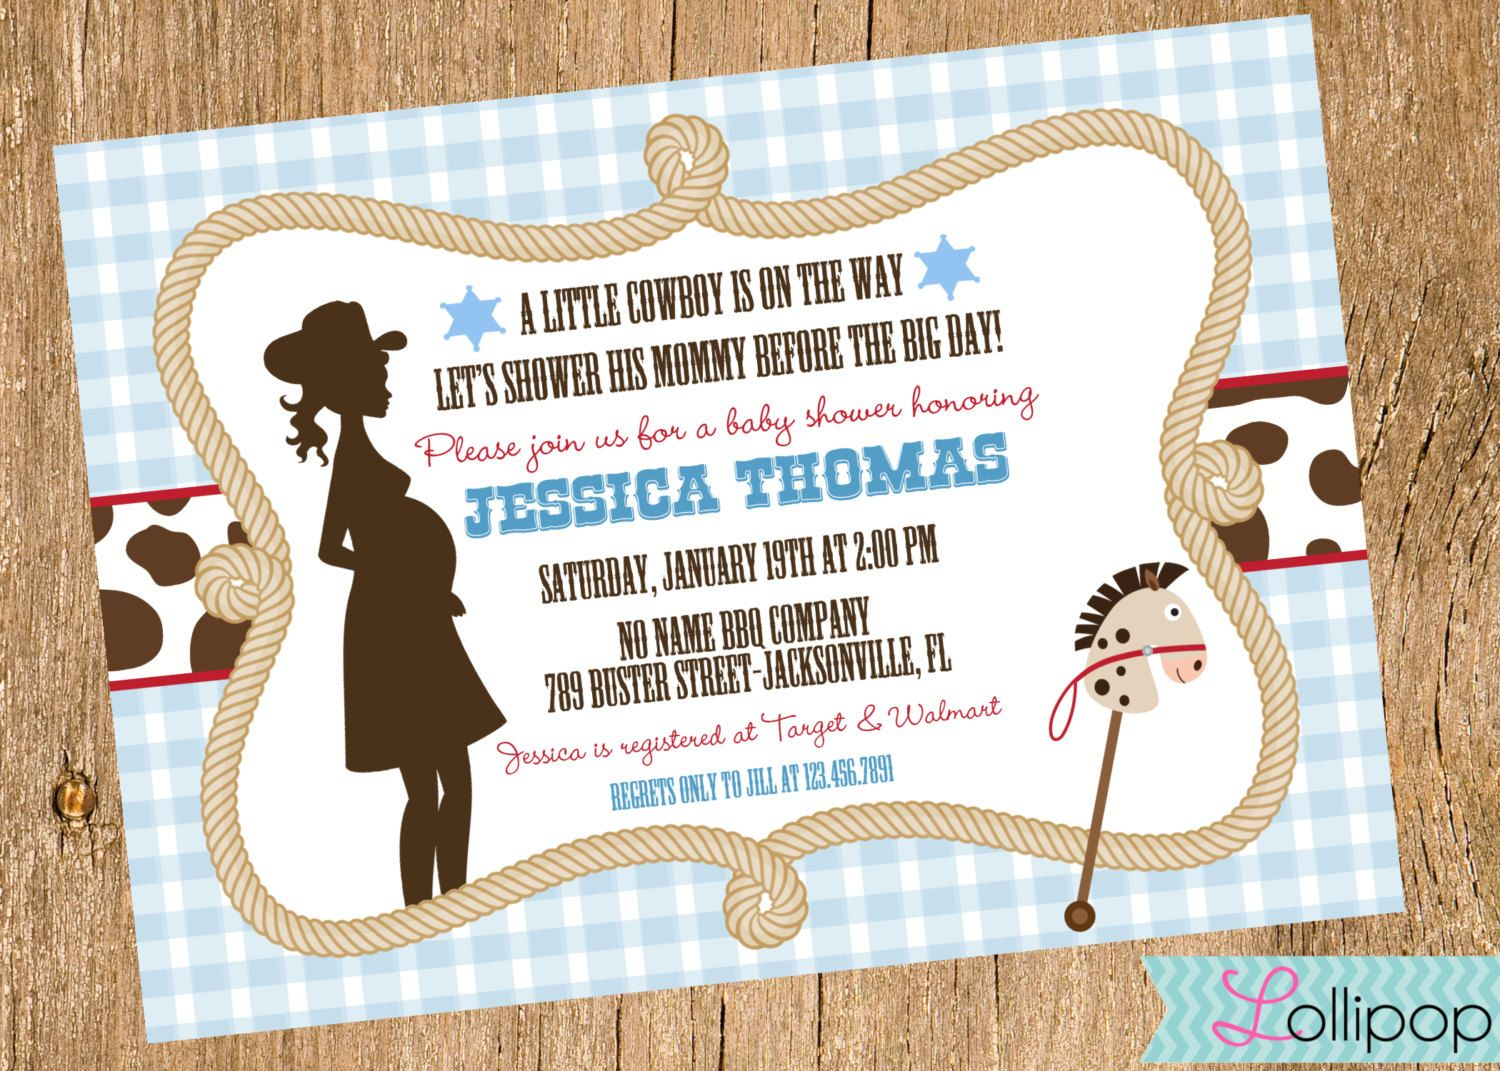 Little cowboy baby shower printable invitation personalized cowboy little cowboy baby shower printable invitation personalized cowboy baby shower invite western baby shower filmwisefo Images